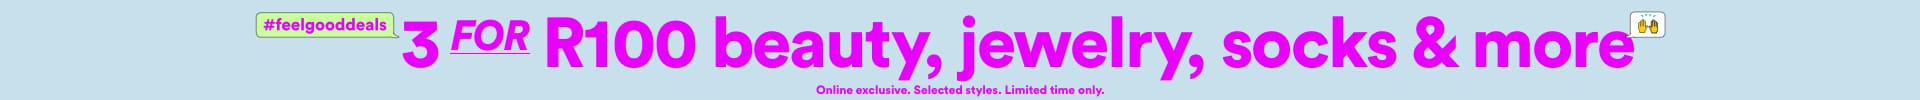 3 For R100 beauty, jewelry, socks & more. Click to Shop.